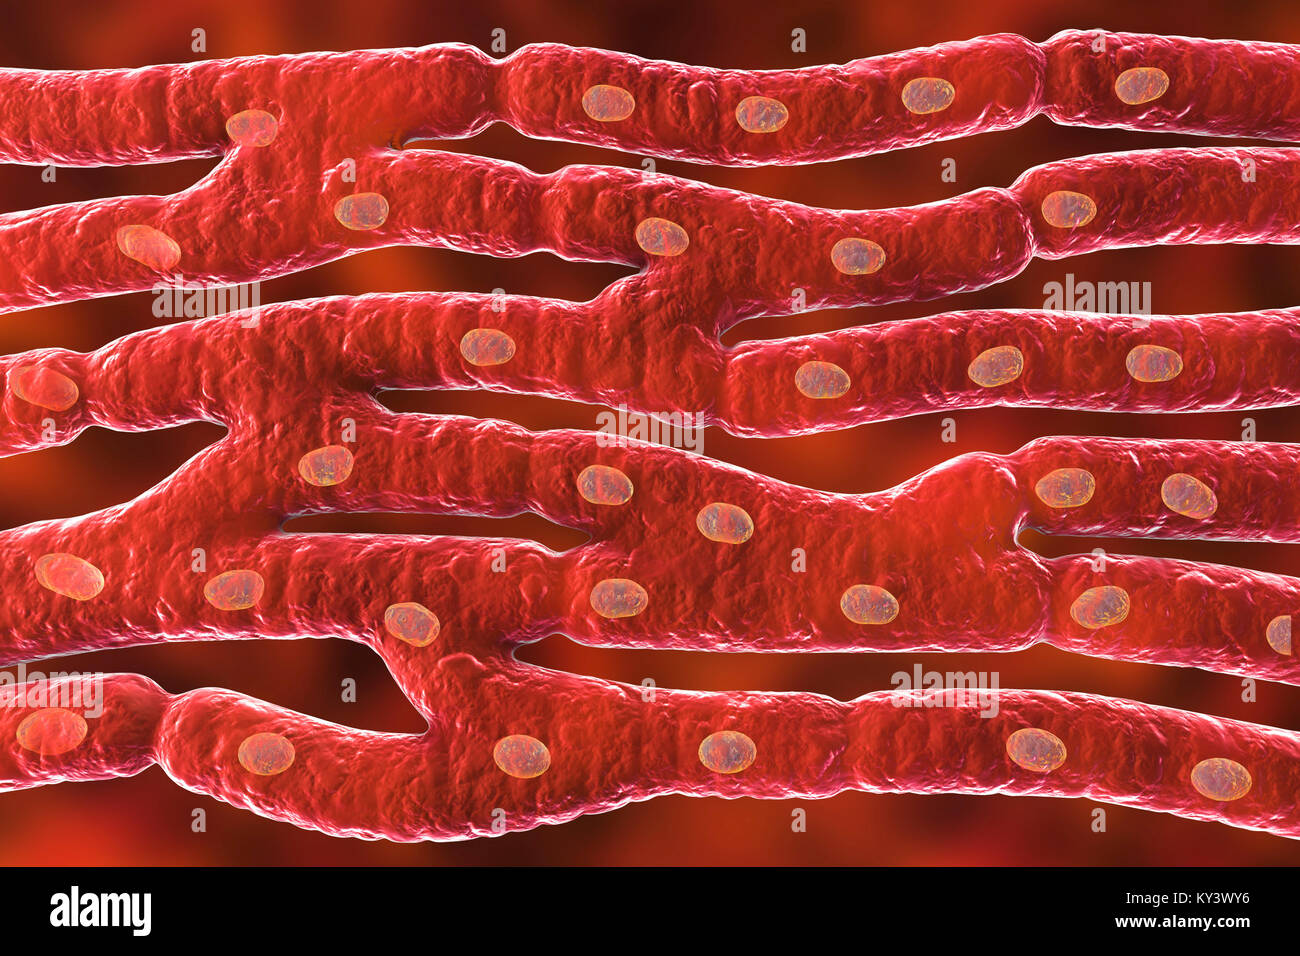 Heart muscle structure, computer illustration. Heart muscle is composed of spindle-shaped cells grouped in irregular Stock Photo